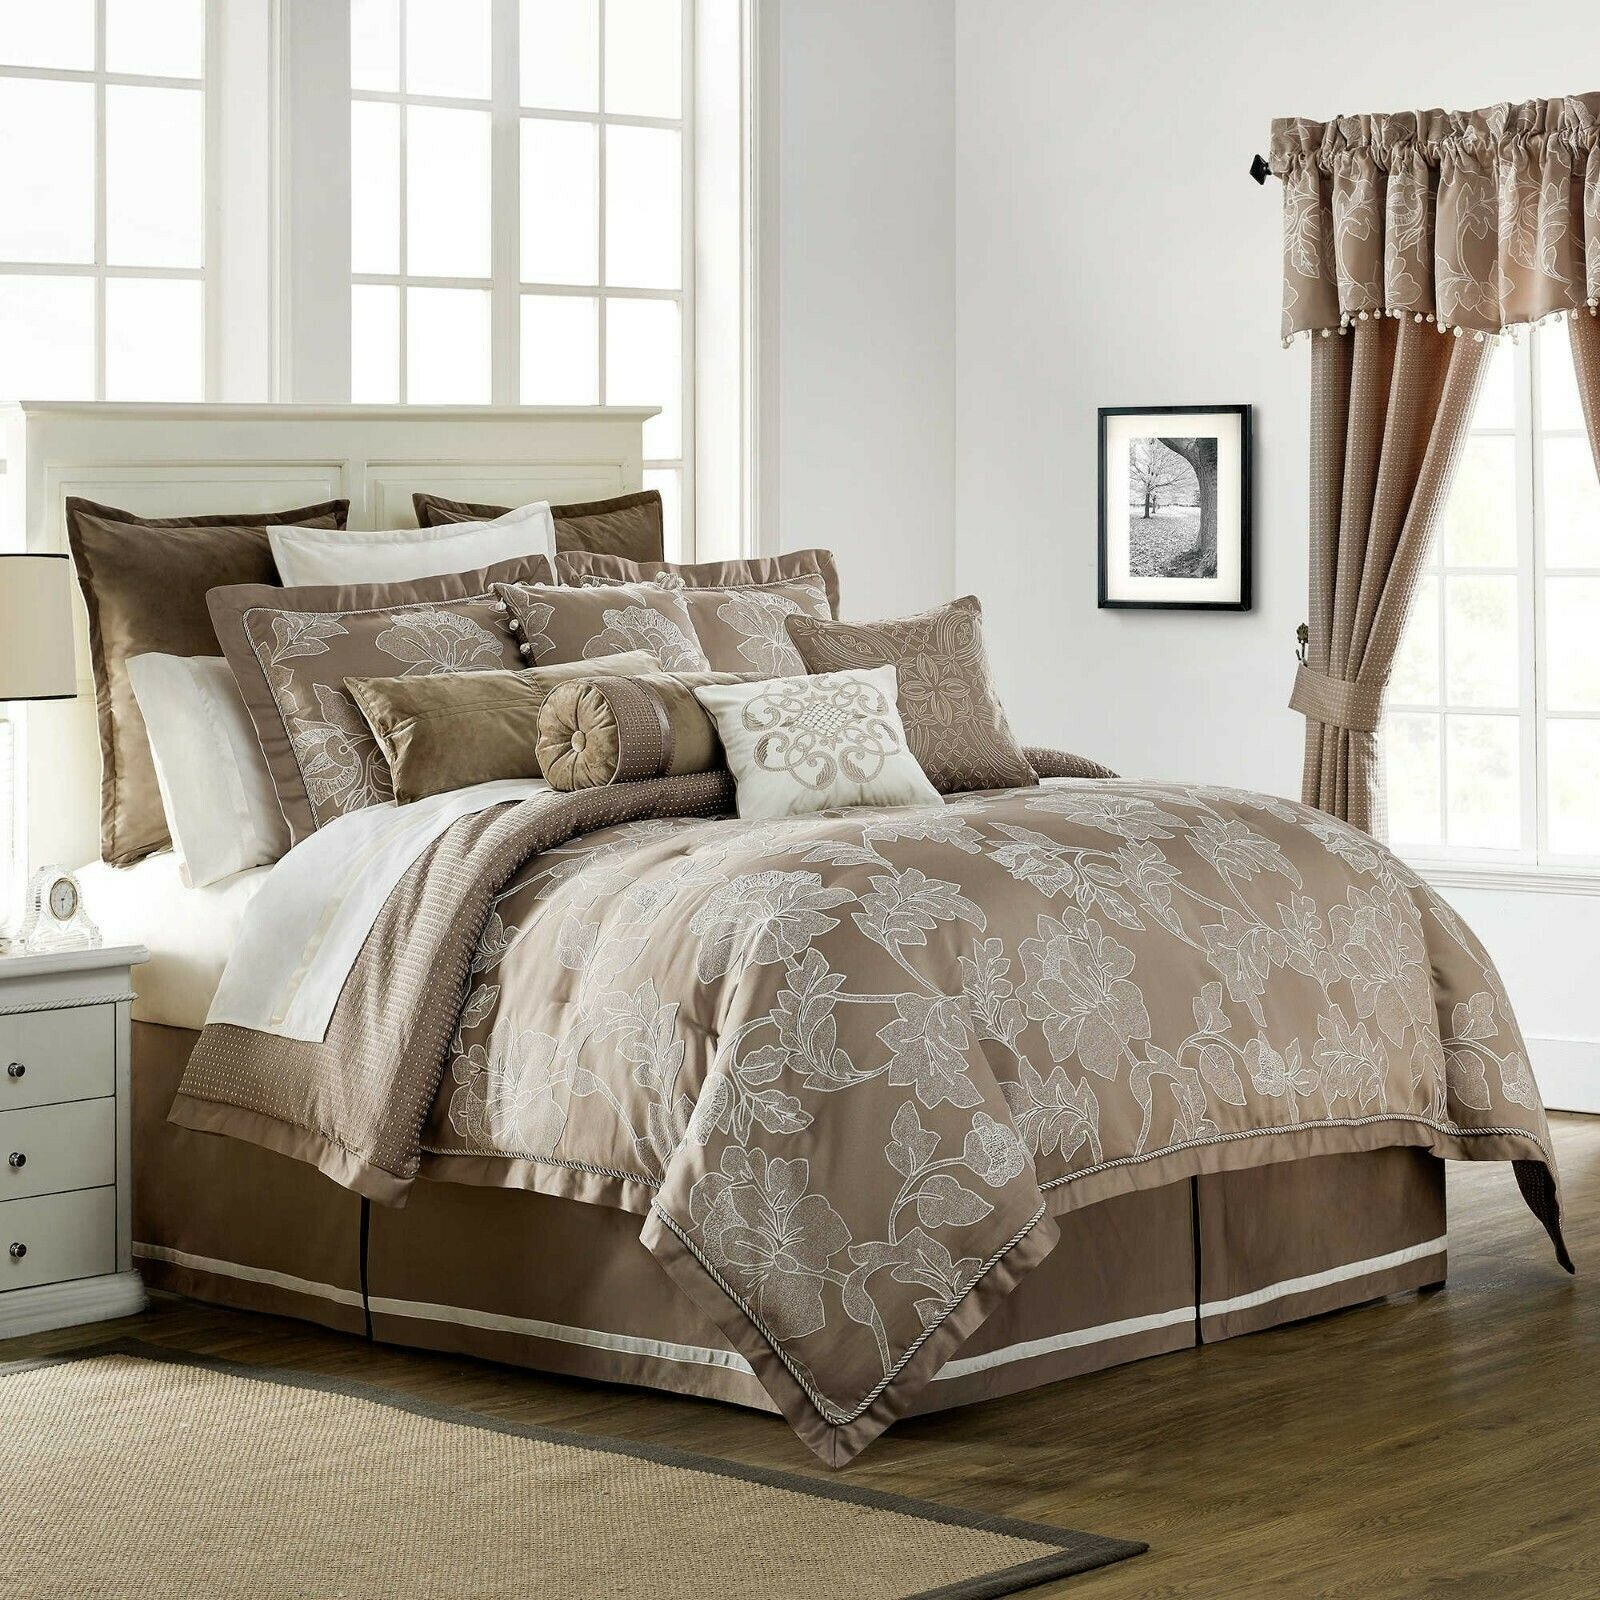 Waterford Trousseau 4P King comforter set Mocha